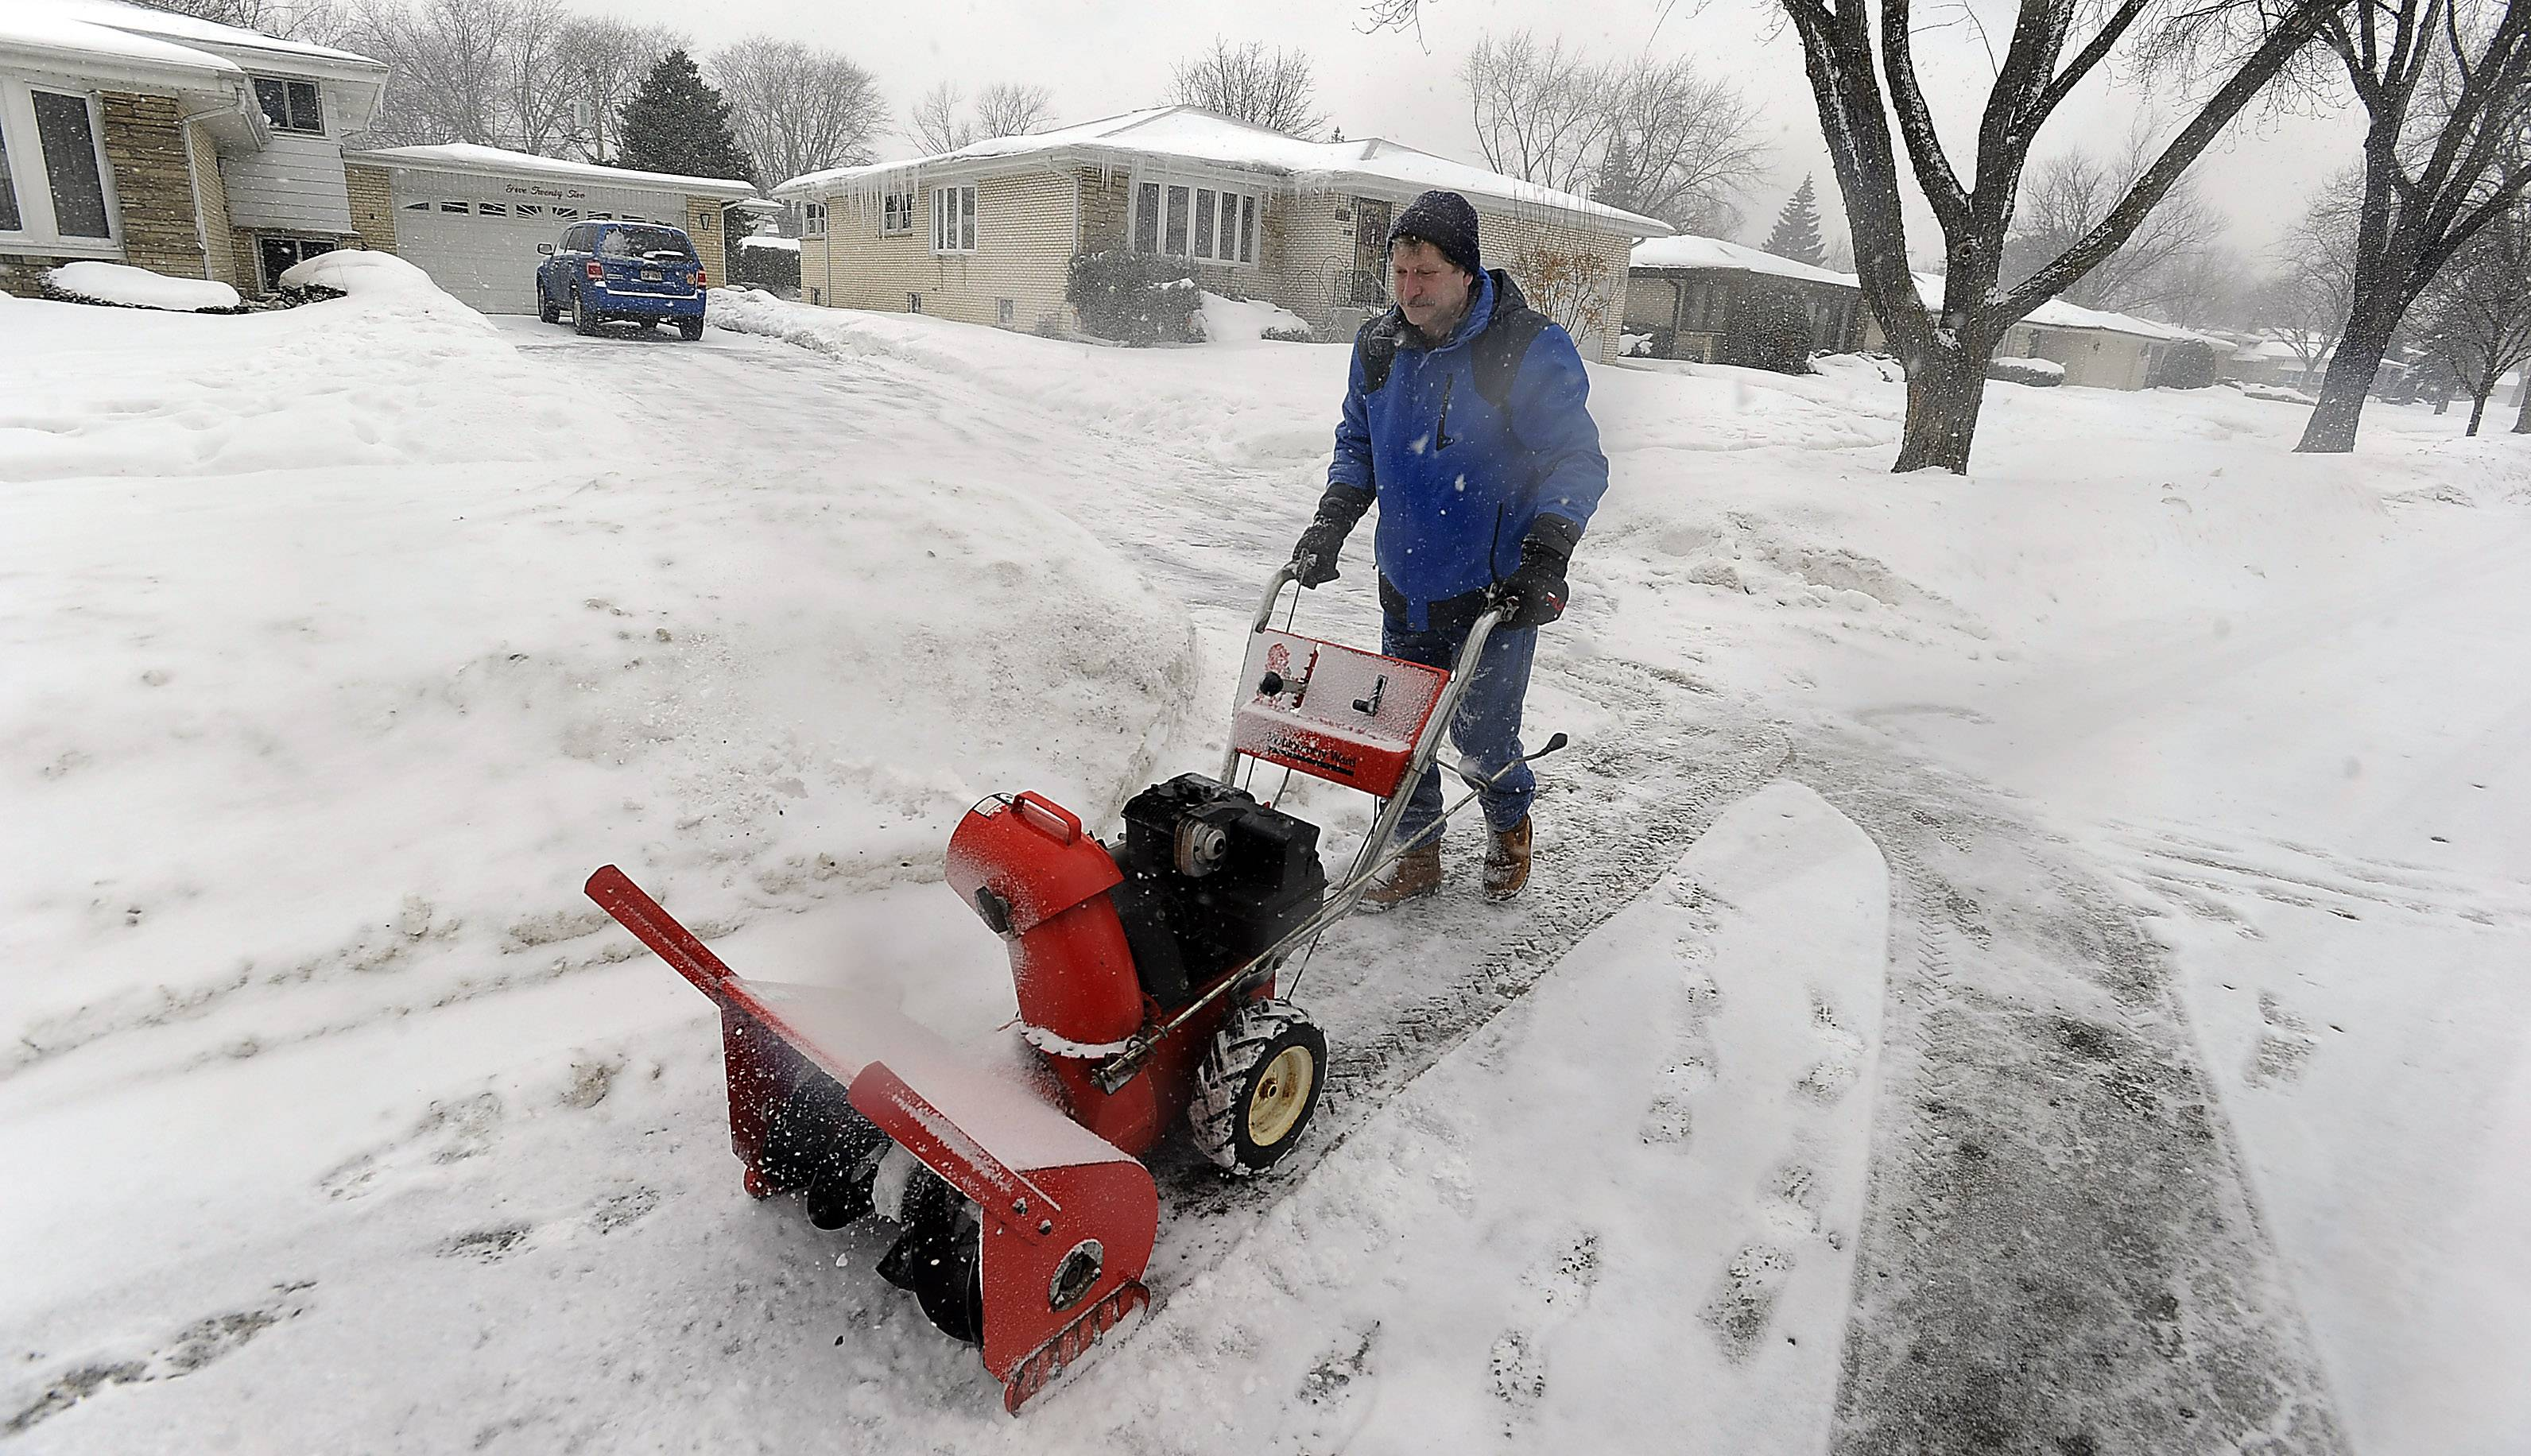 Armed with the used Montgomery Ward snowblower his wife found at a garage sale in 1985, Jim Sieburg plows a path for an elderly widow in his Des Plaines neighborhood. Sieburg, who celebrates his 57th birthday today, has been lending a hand to neighbors for decades.